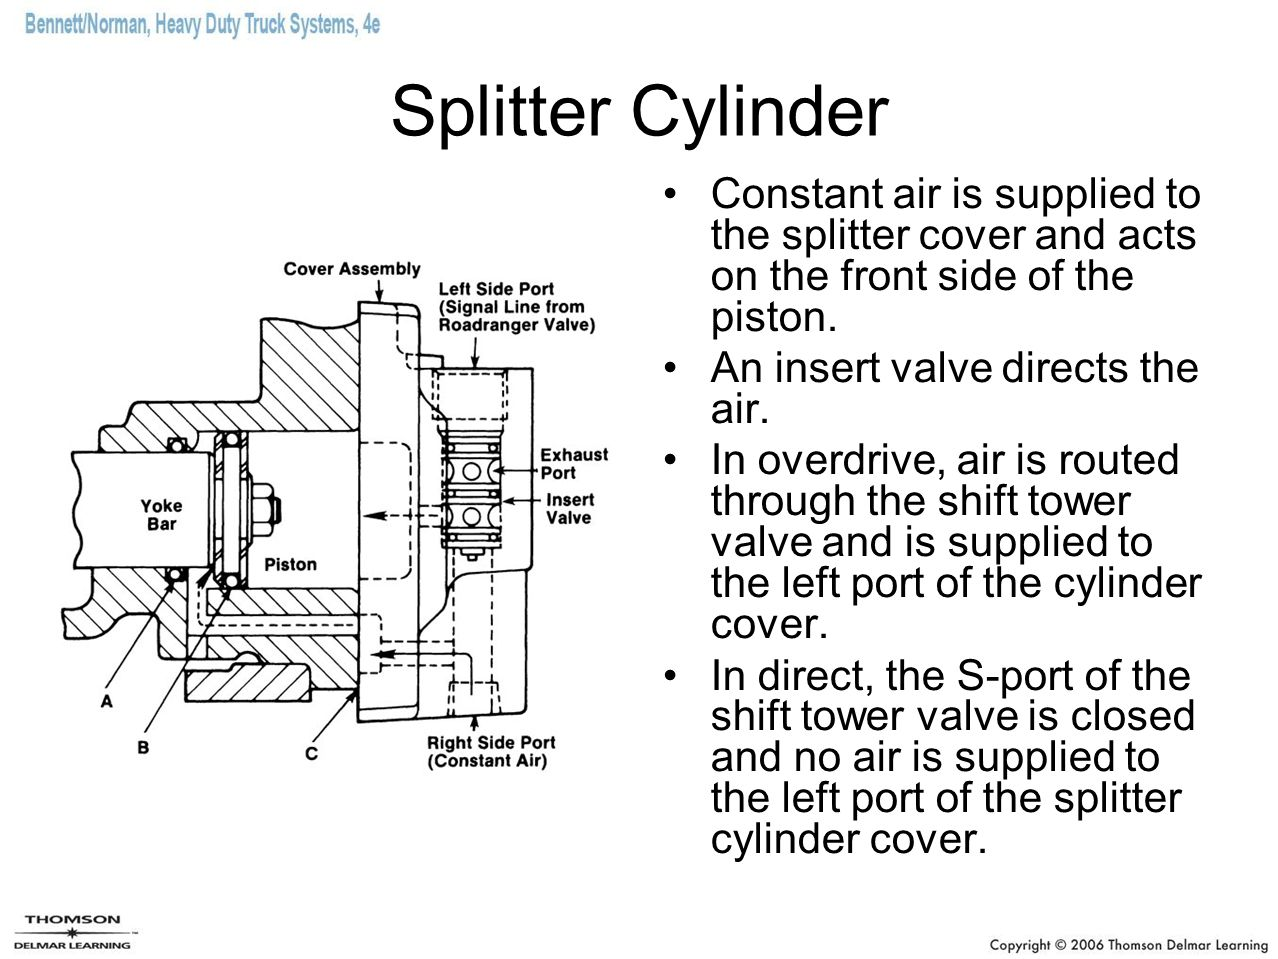 Splitter Cylinder Constant air is supplied to the splitter cover and acts on the front side of the piston.